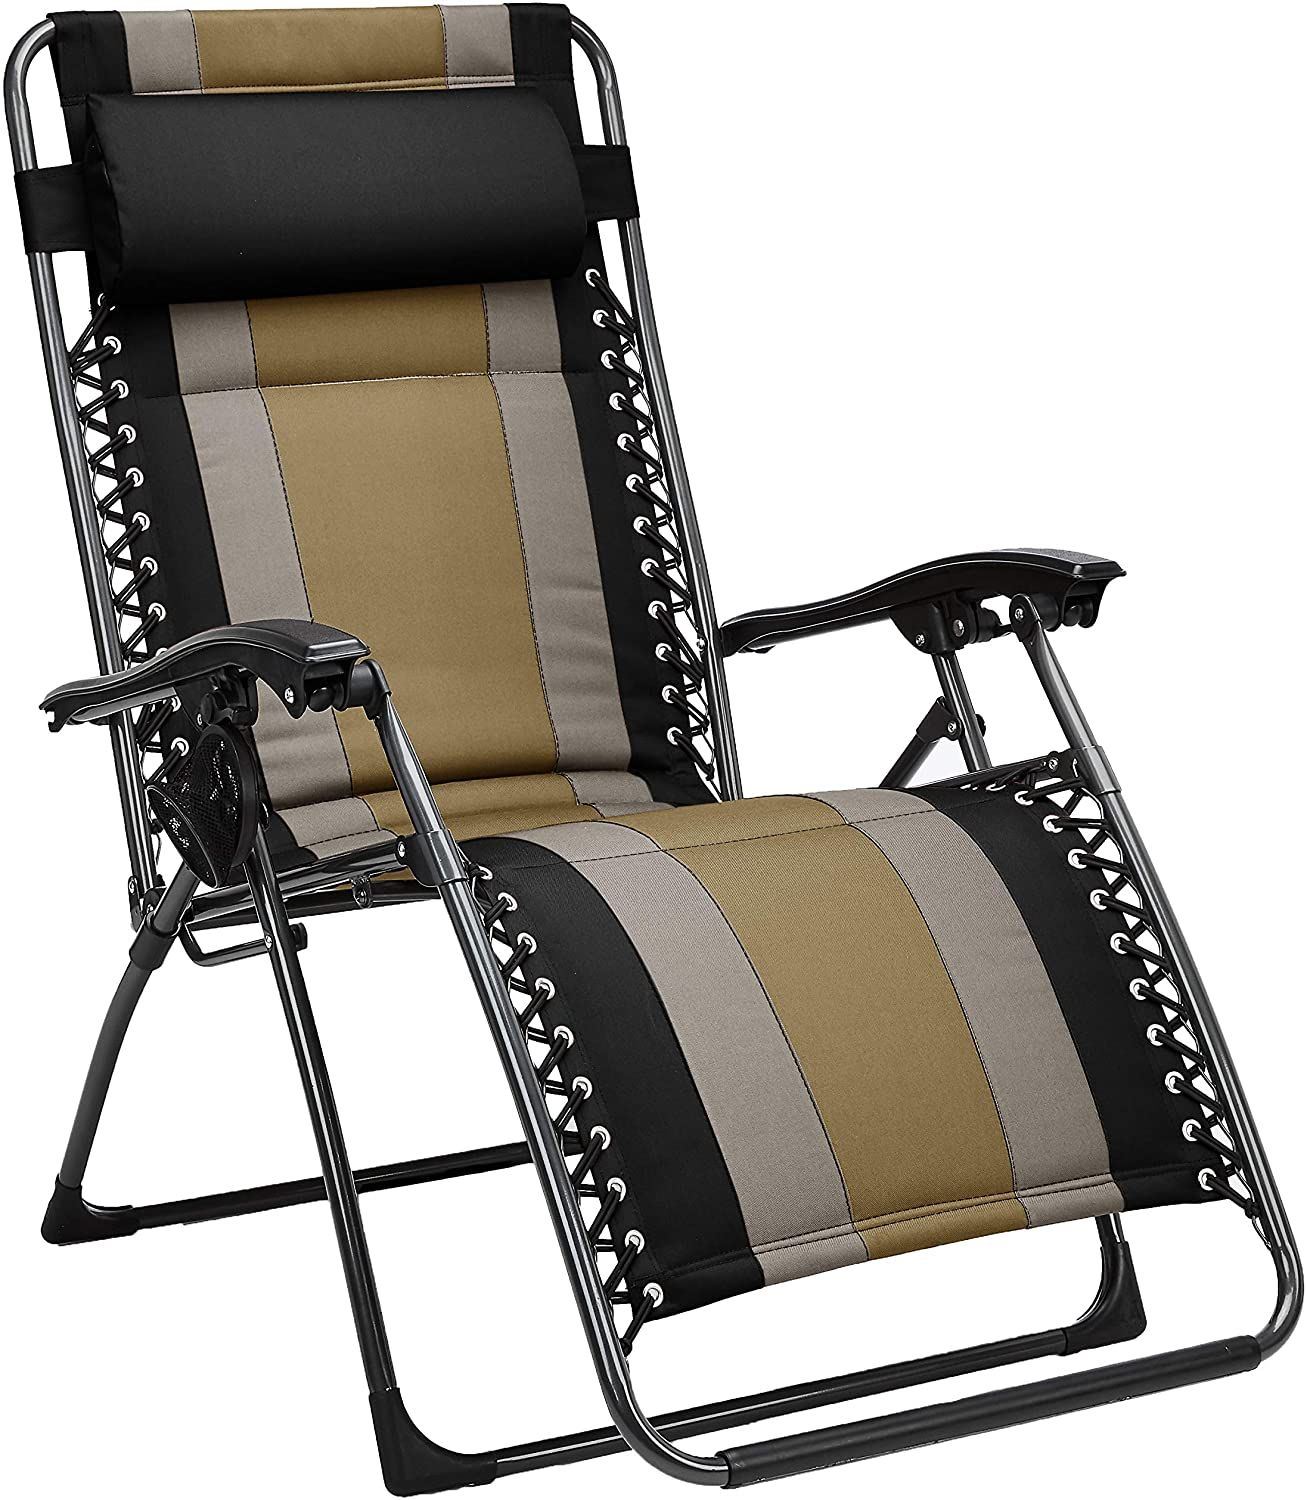 Cool Father S Day Gift Ideas Jake Approved In 2020 Zero Gravity Chair Patio Chairs Mens Gifts